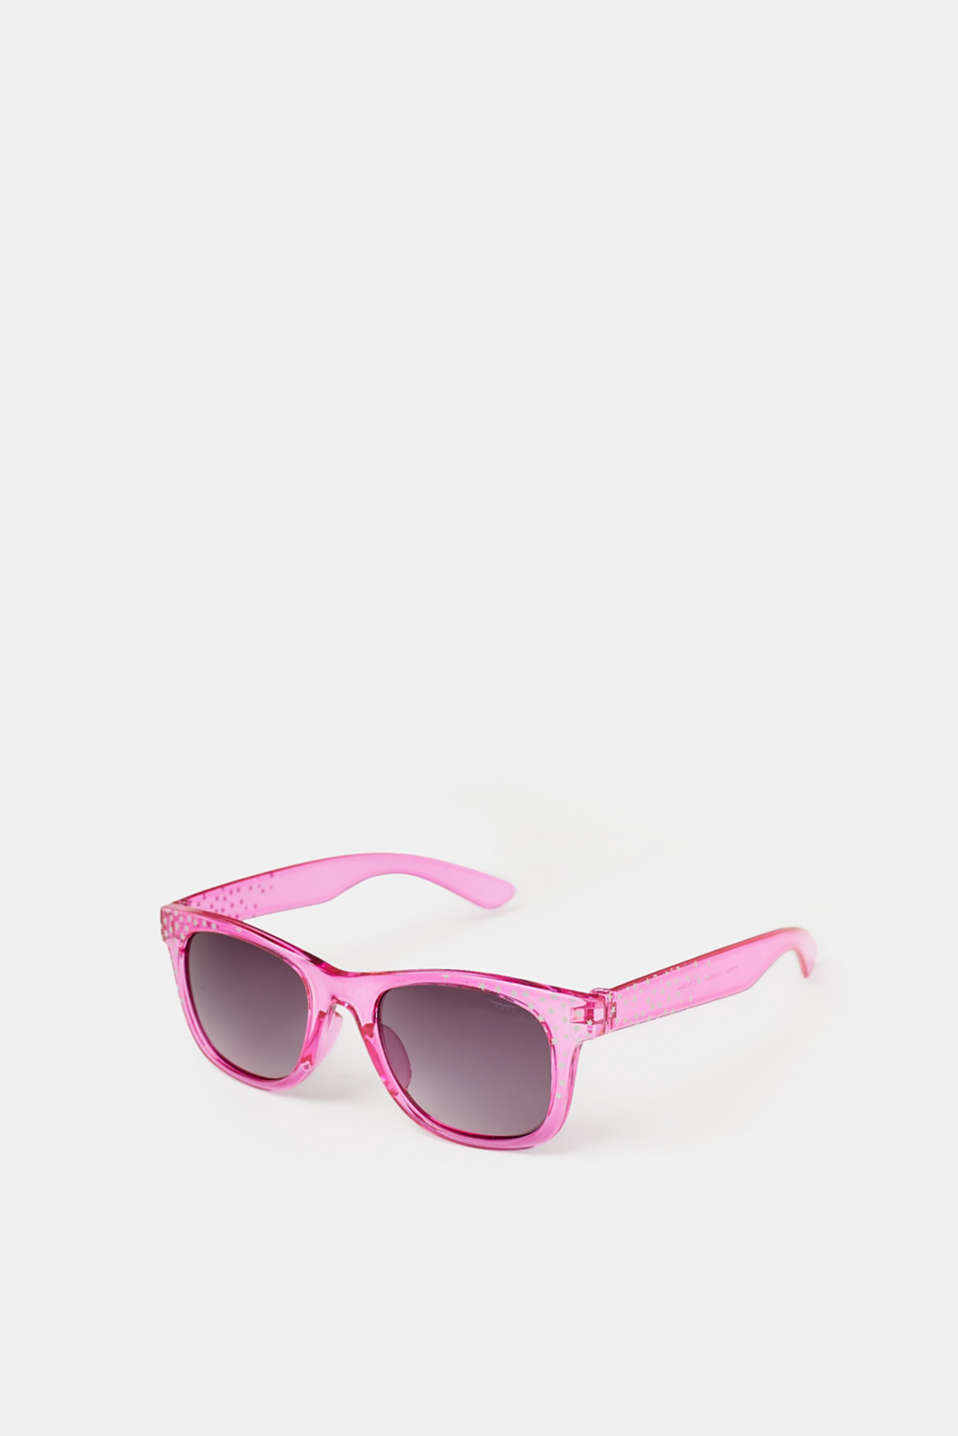 Esprit - Kids sunglasses